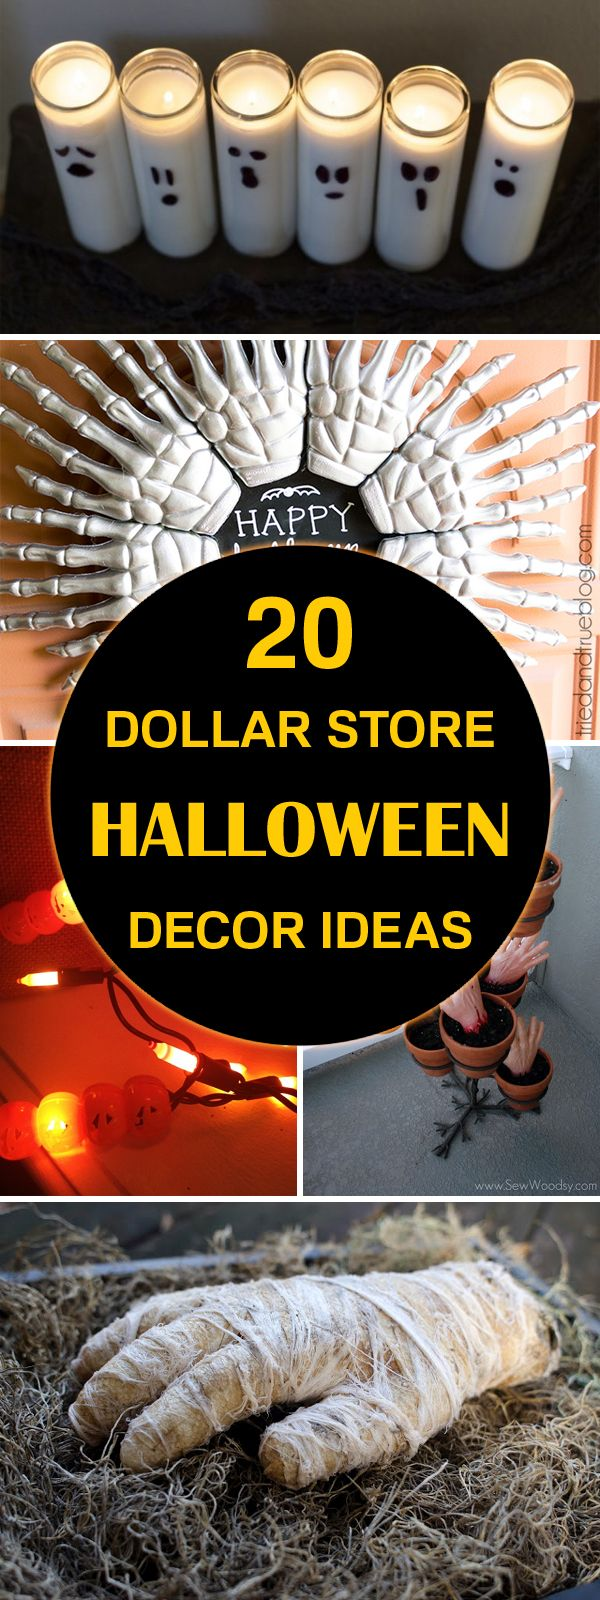 20 dollar store halloween decor ideas - Easy Halloween Decoration Ideas